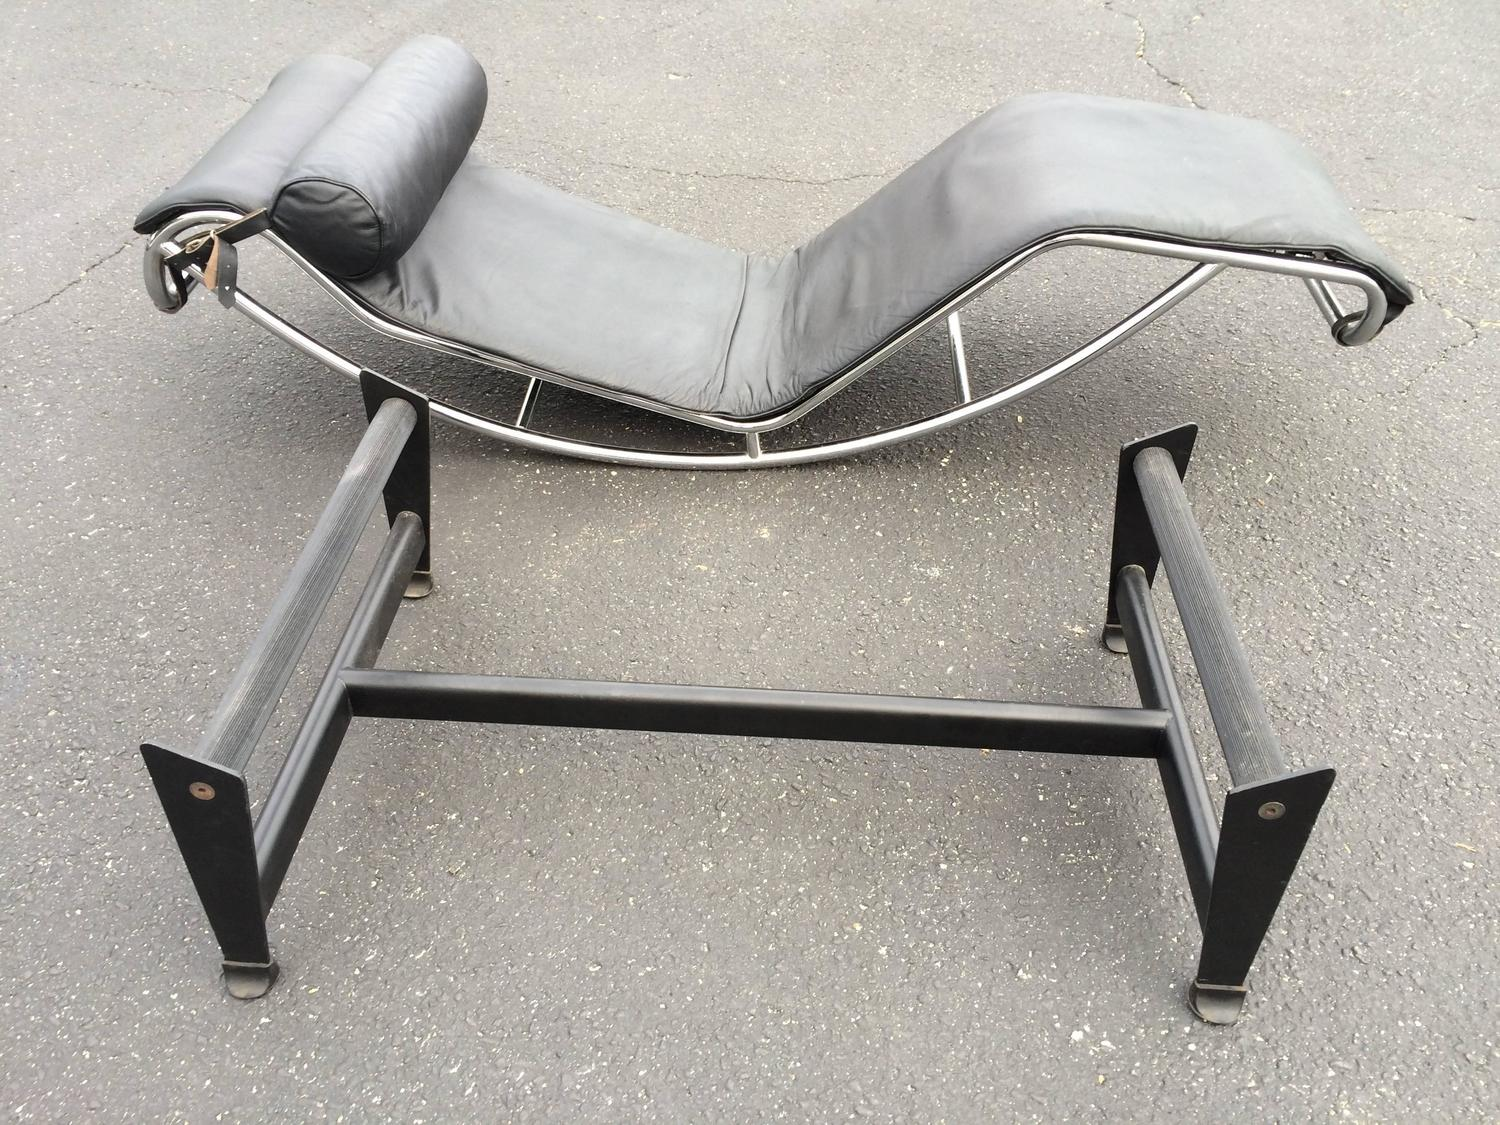 Le corbusier lc4 chaise longue in black leather at 1stdibs for Chaise longue le corbusier precio